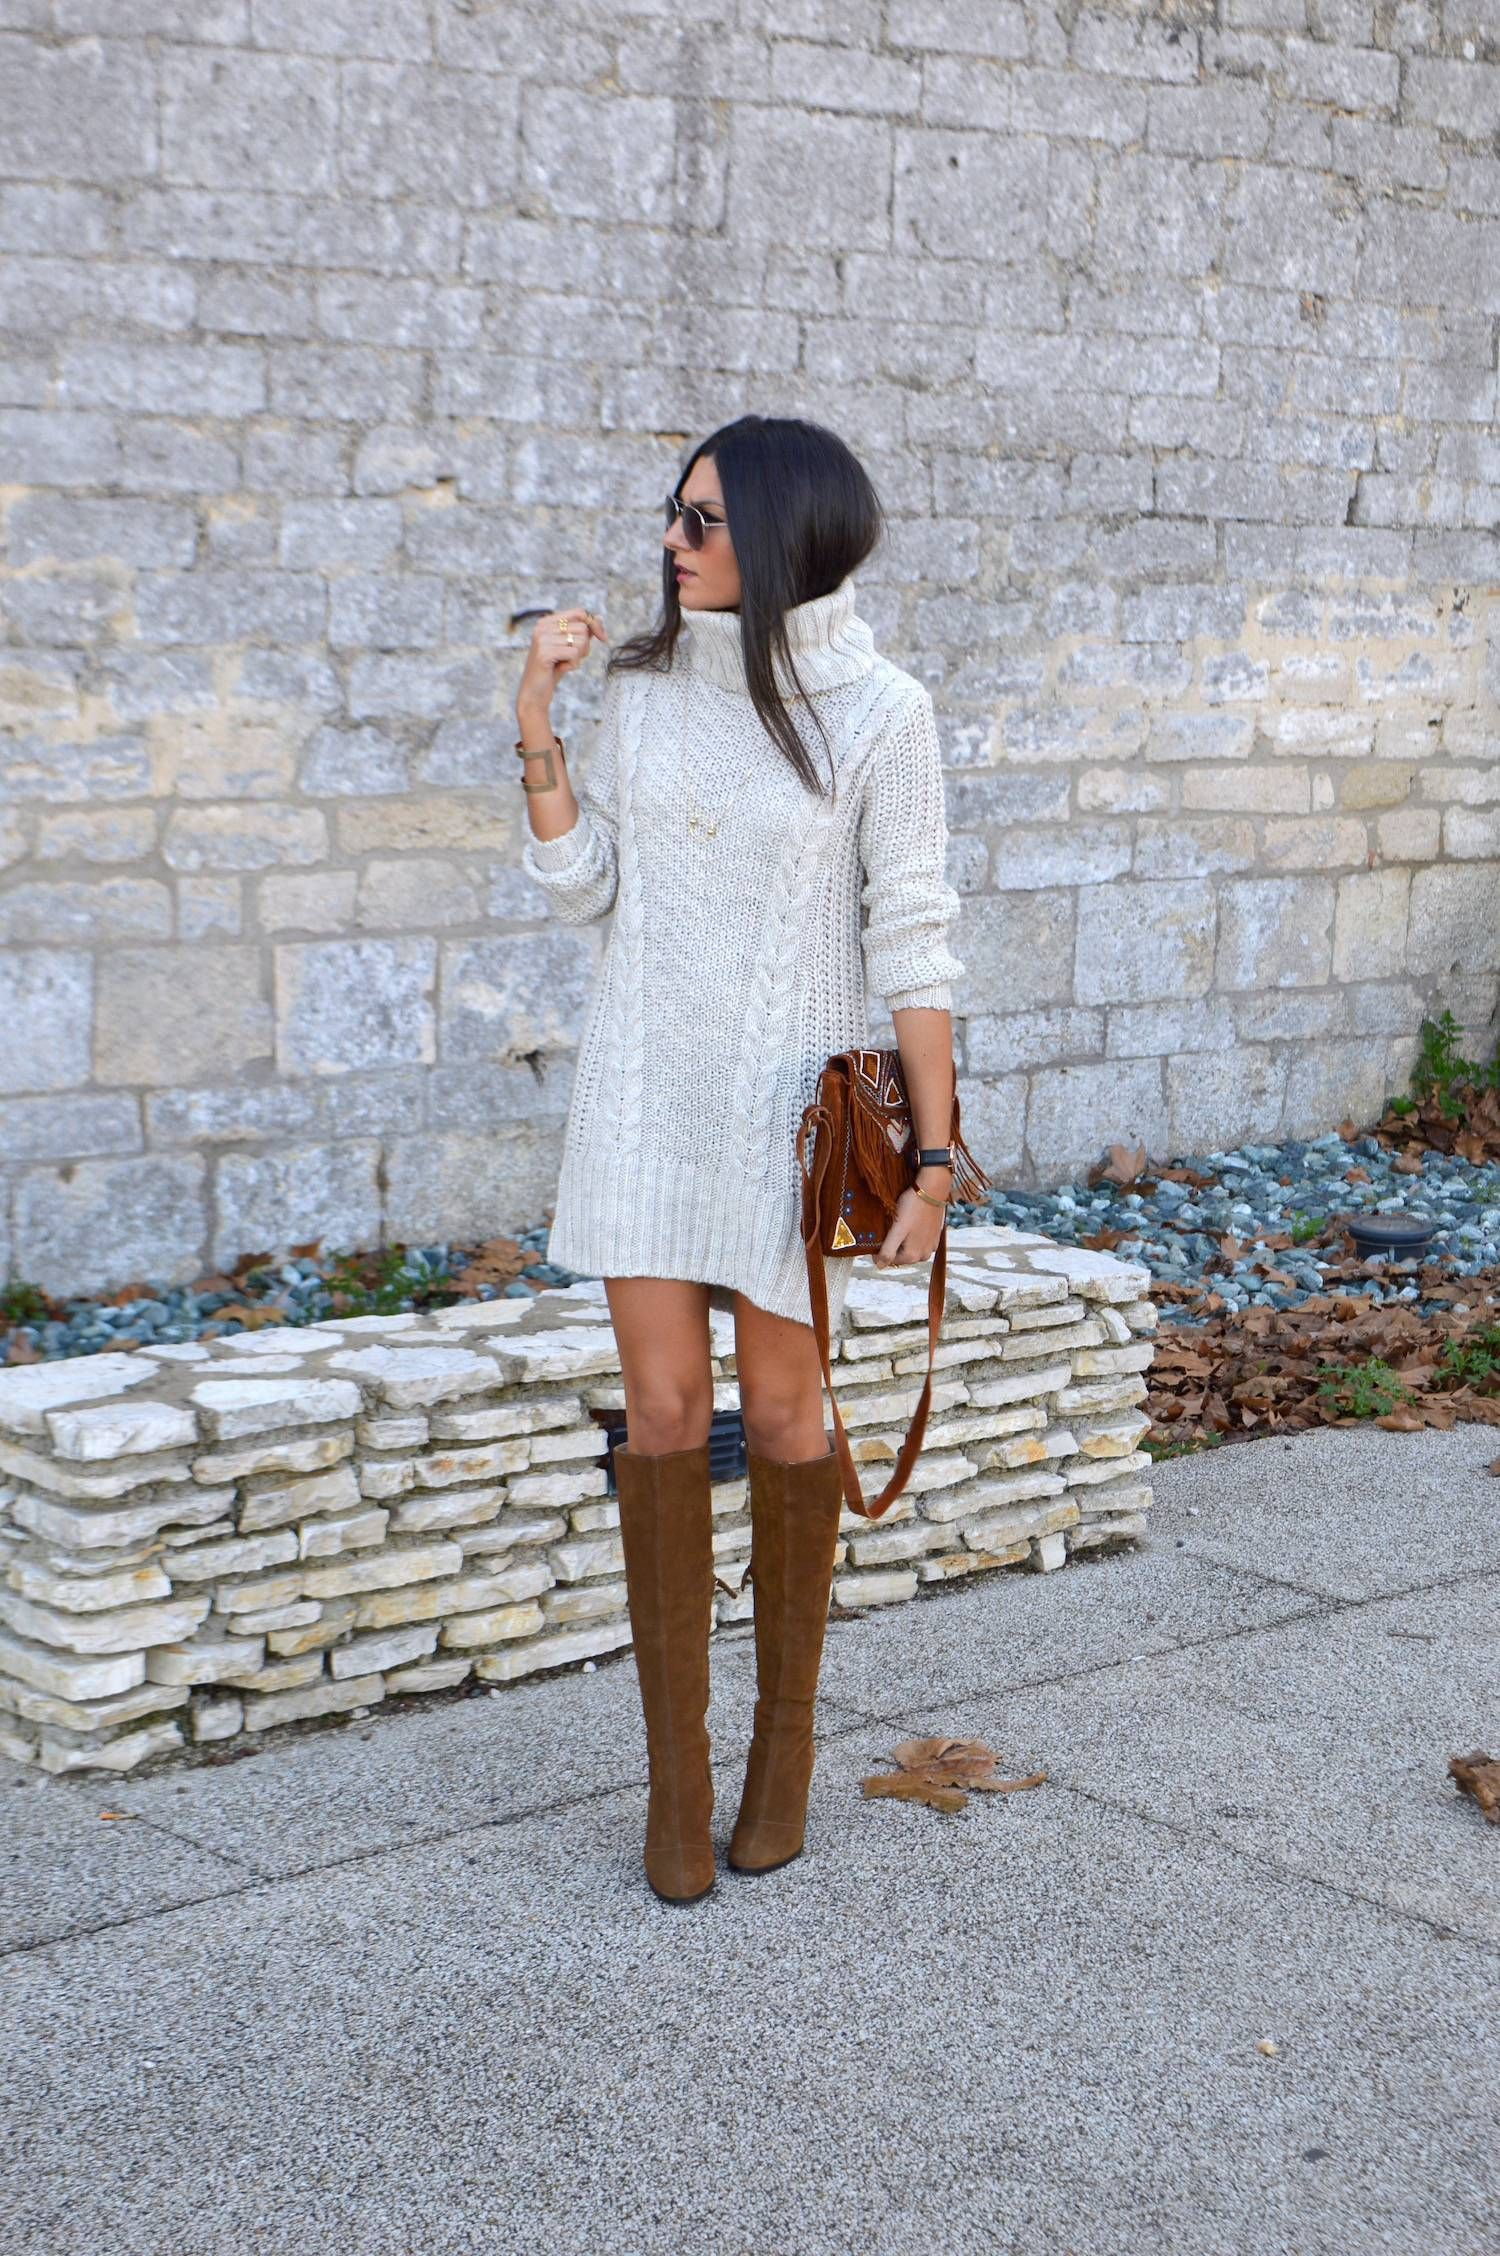 Fall winter style chunky knit sweater dress tall suede boots